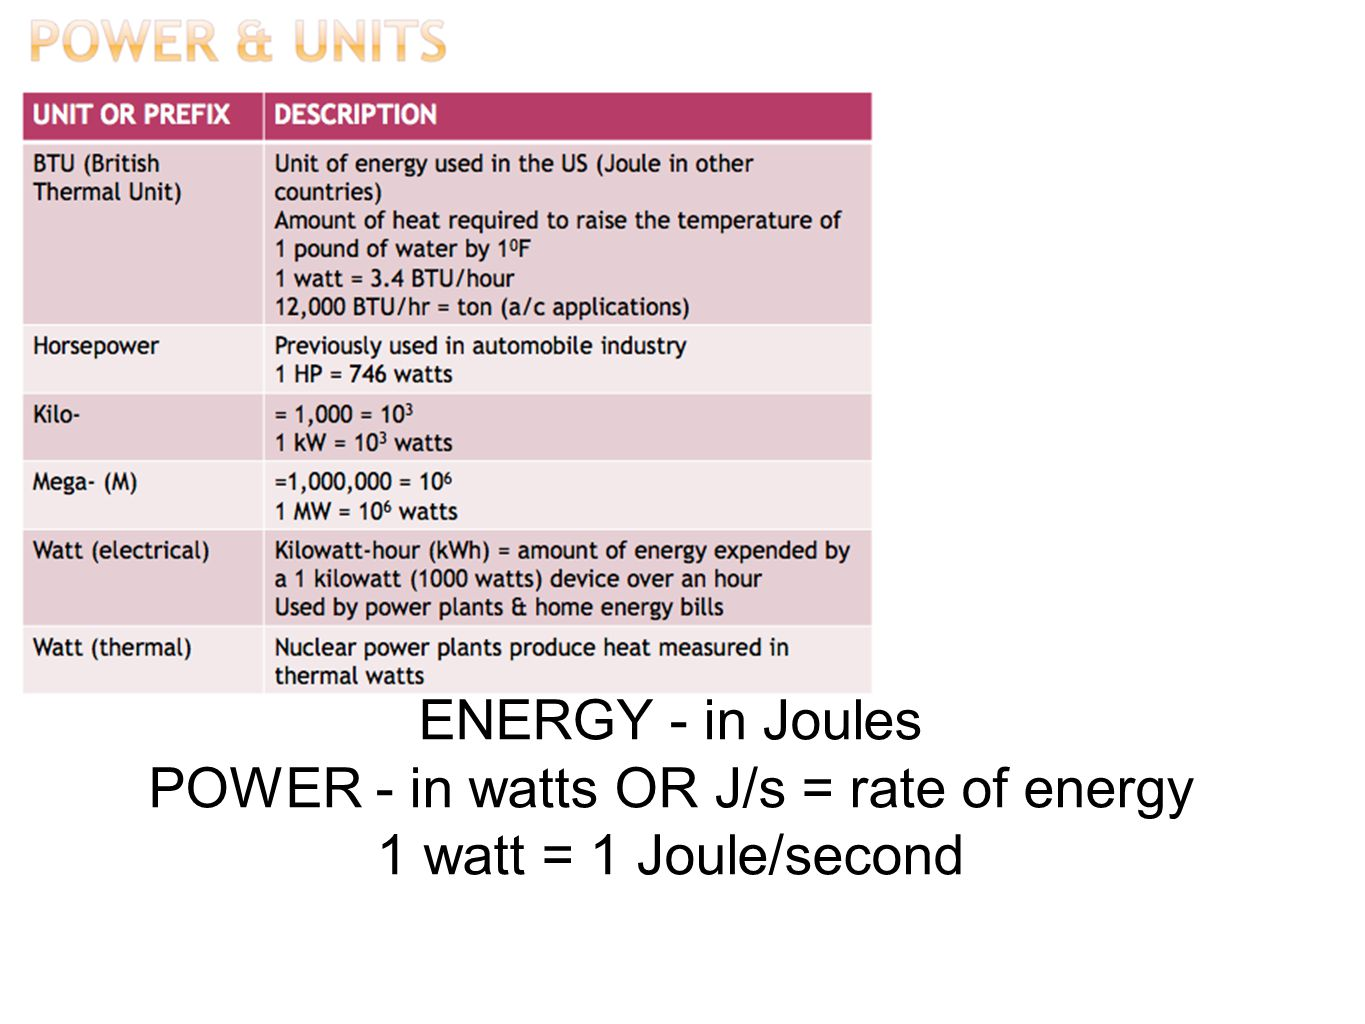 POWER - in watts OR J/s = rate of energy